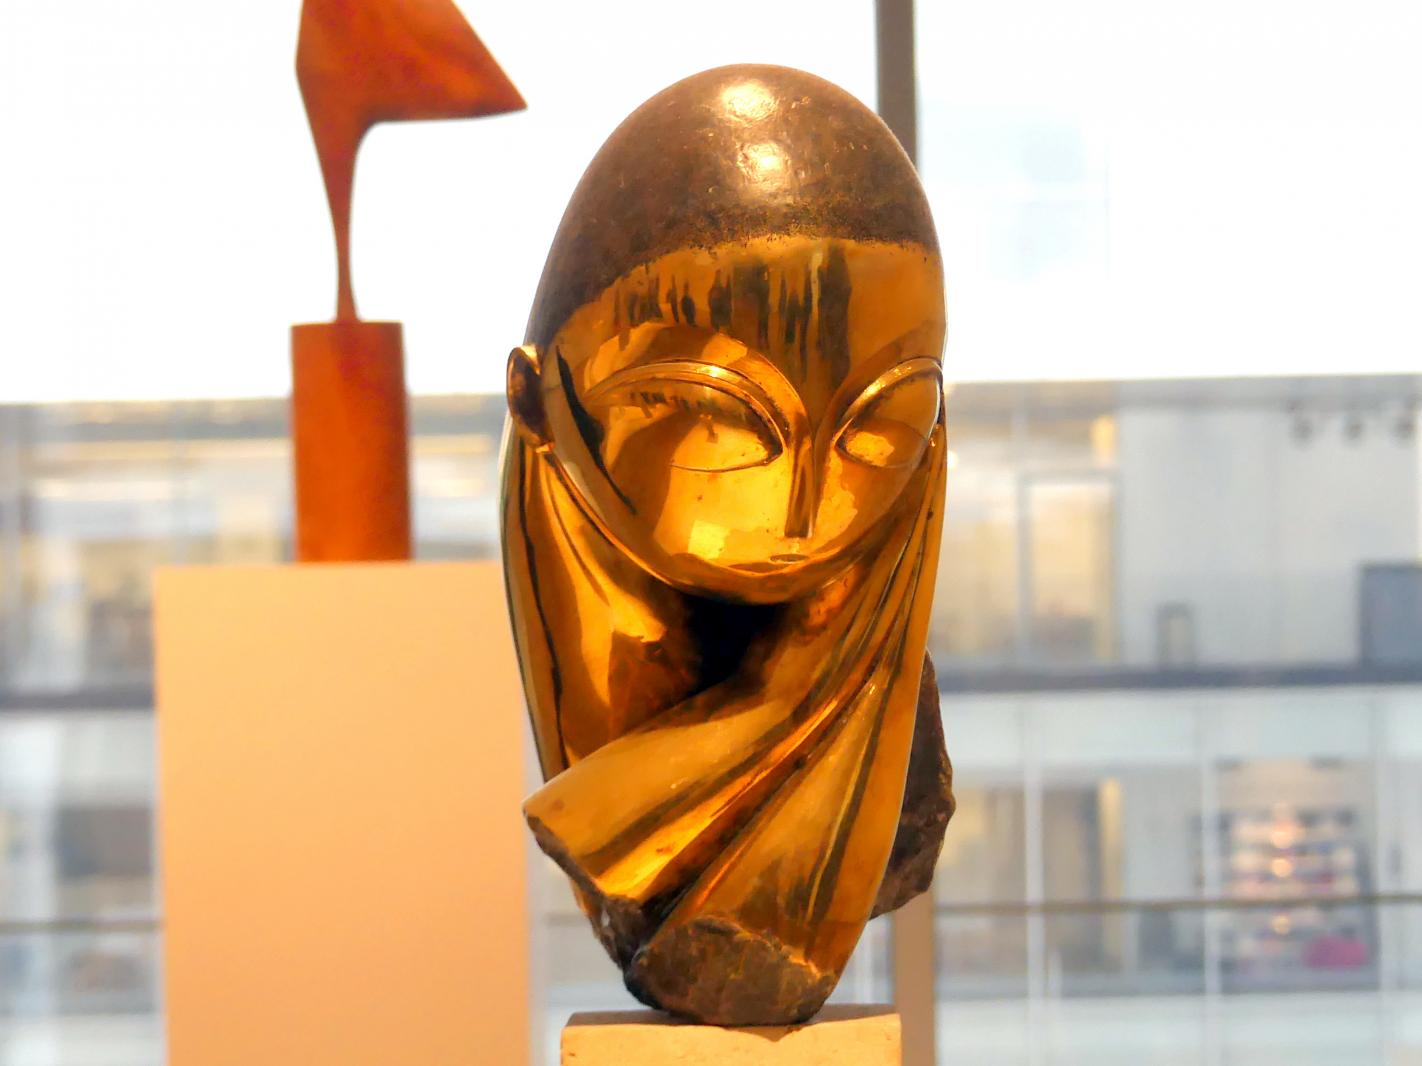 Constantin Brâncuși: Mademoiselle Pogany, Version I, 1913